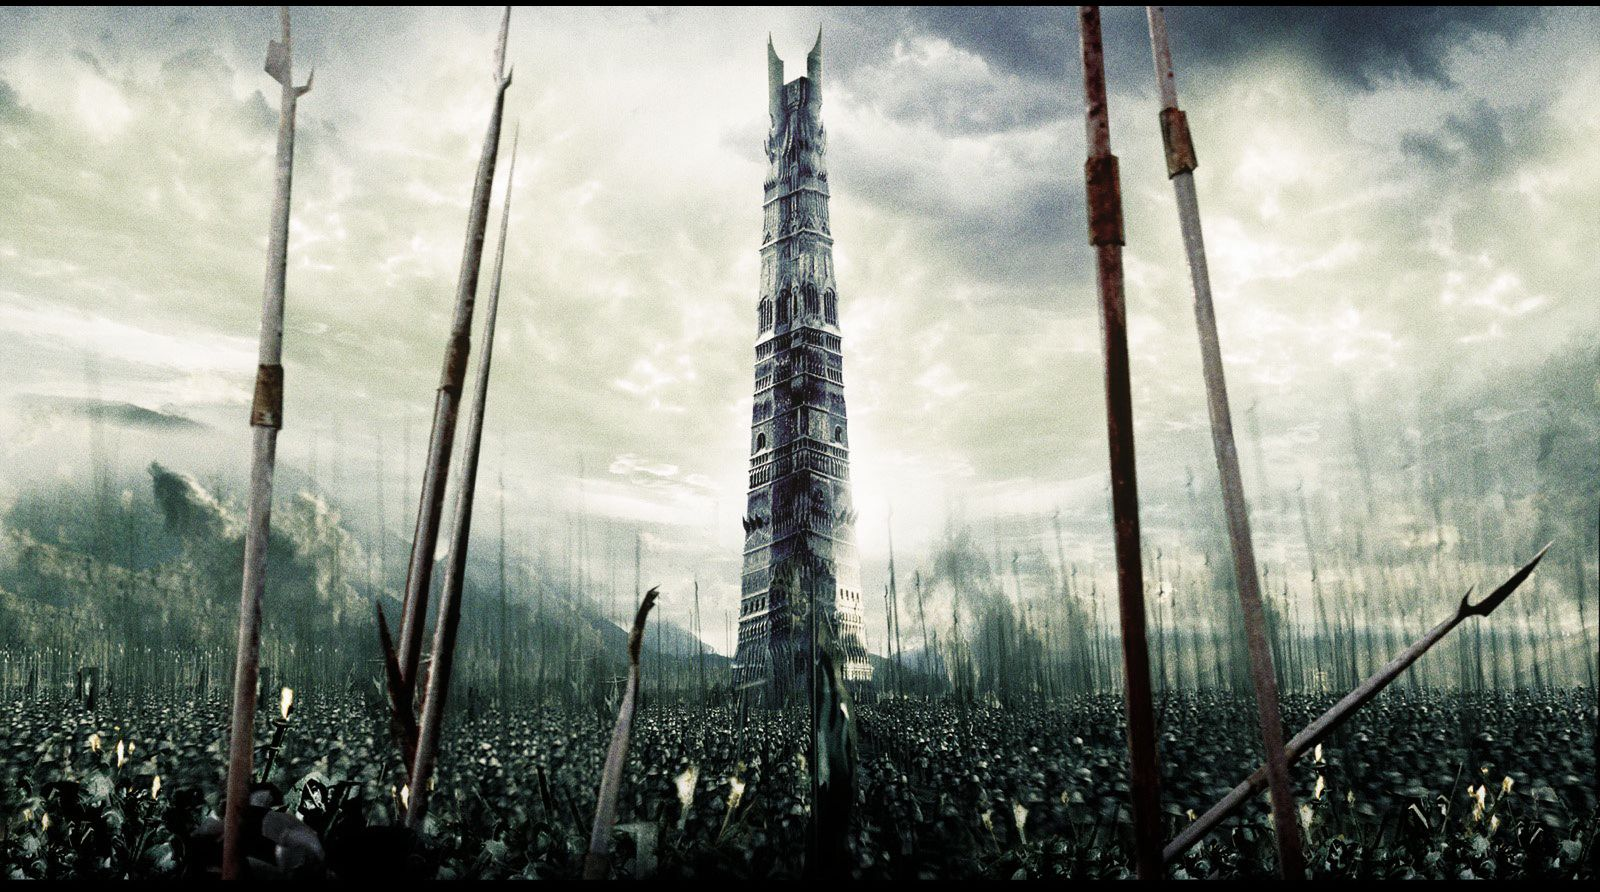 Movies Wallpaper Set 4 Lotr The Two Towers Lord Of The Rings Middle Earth